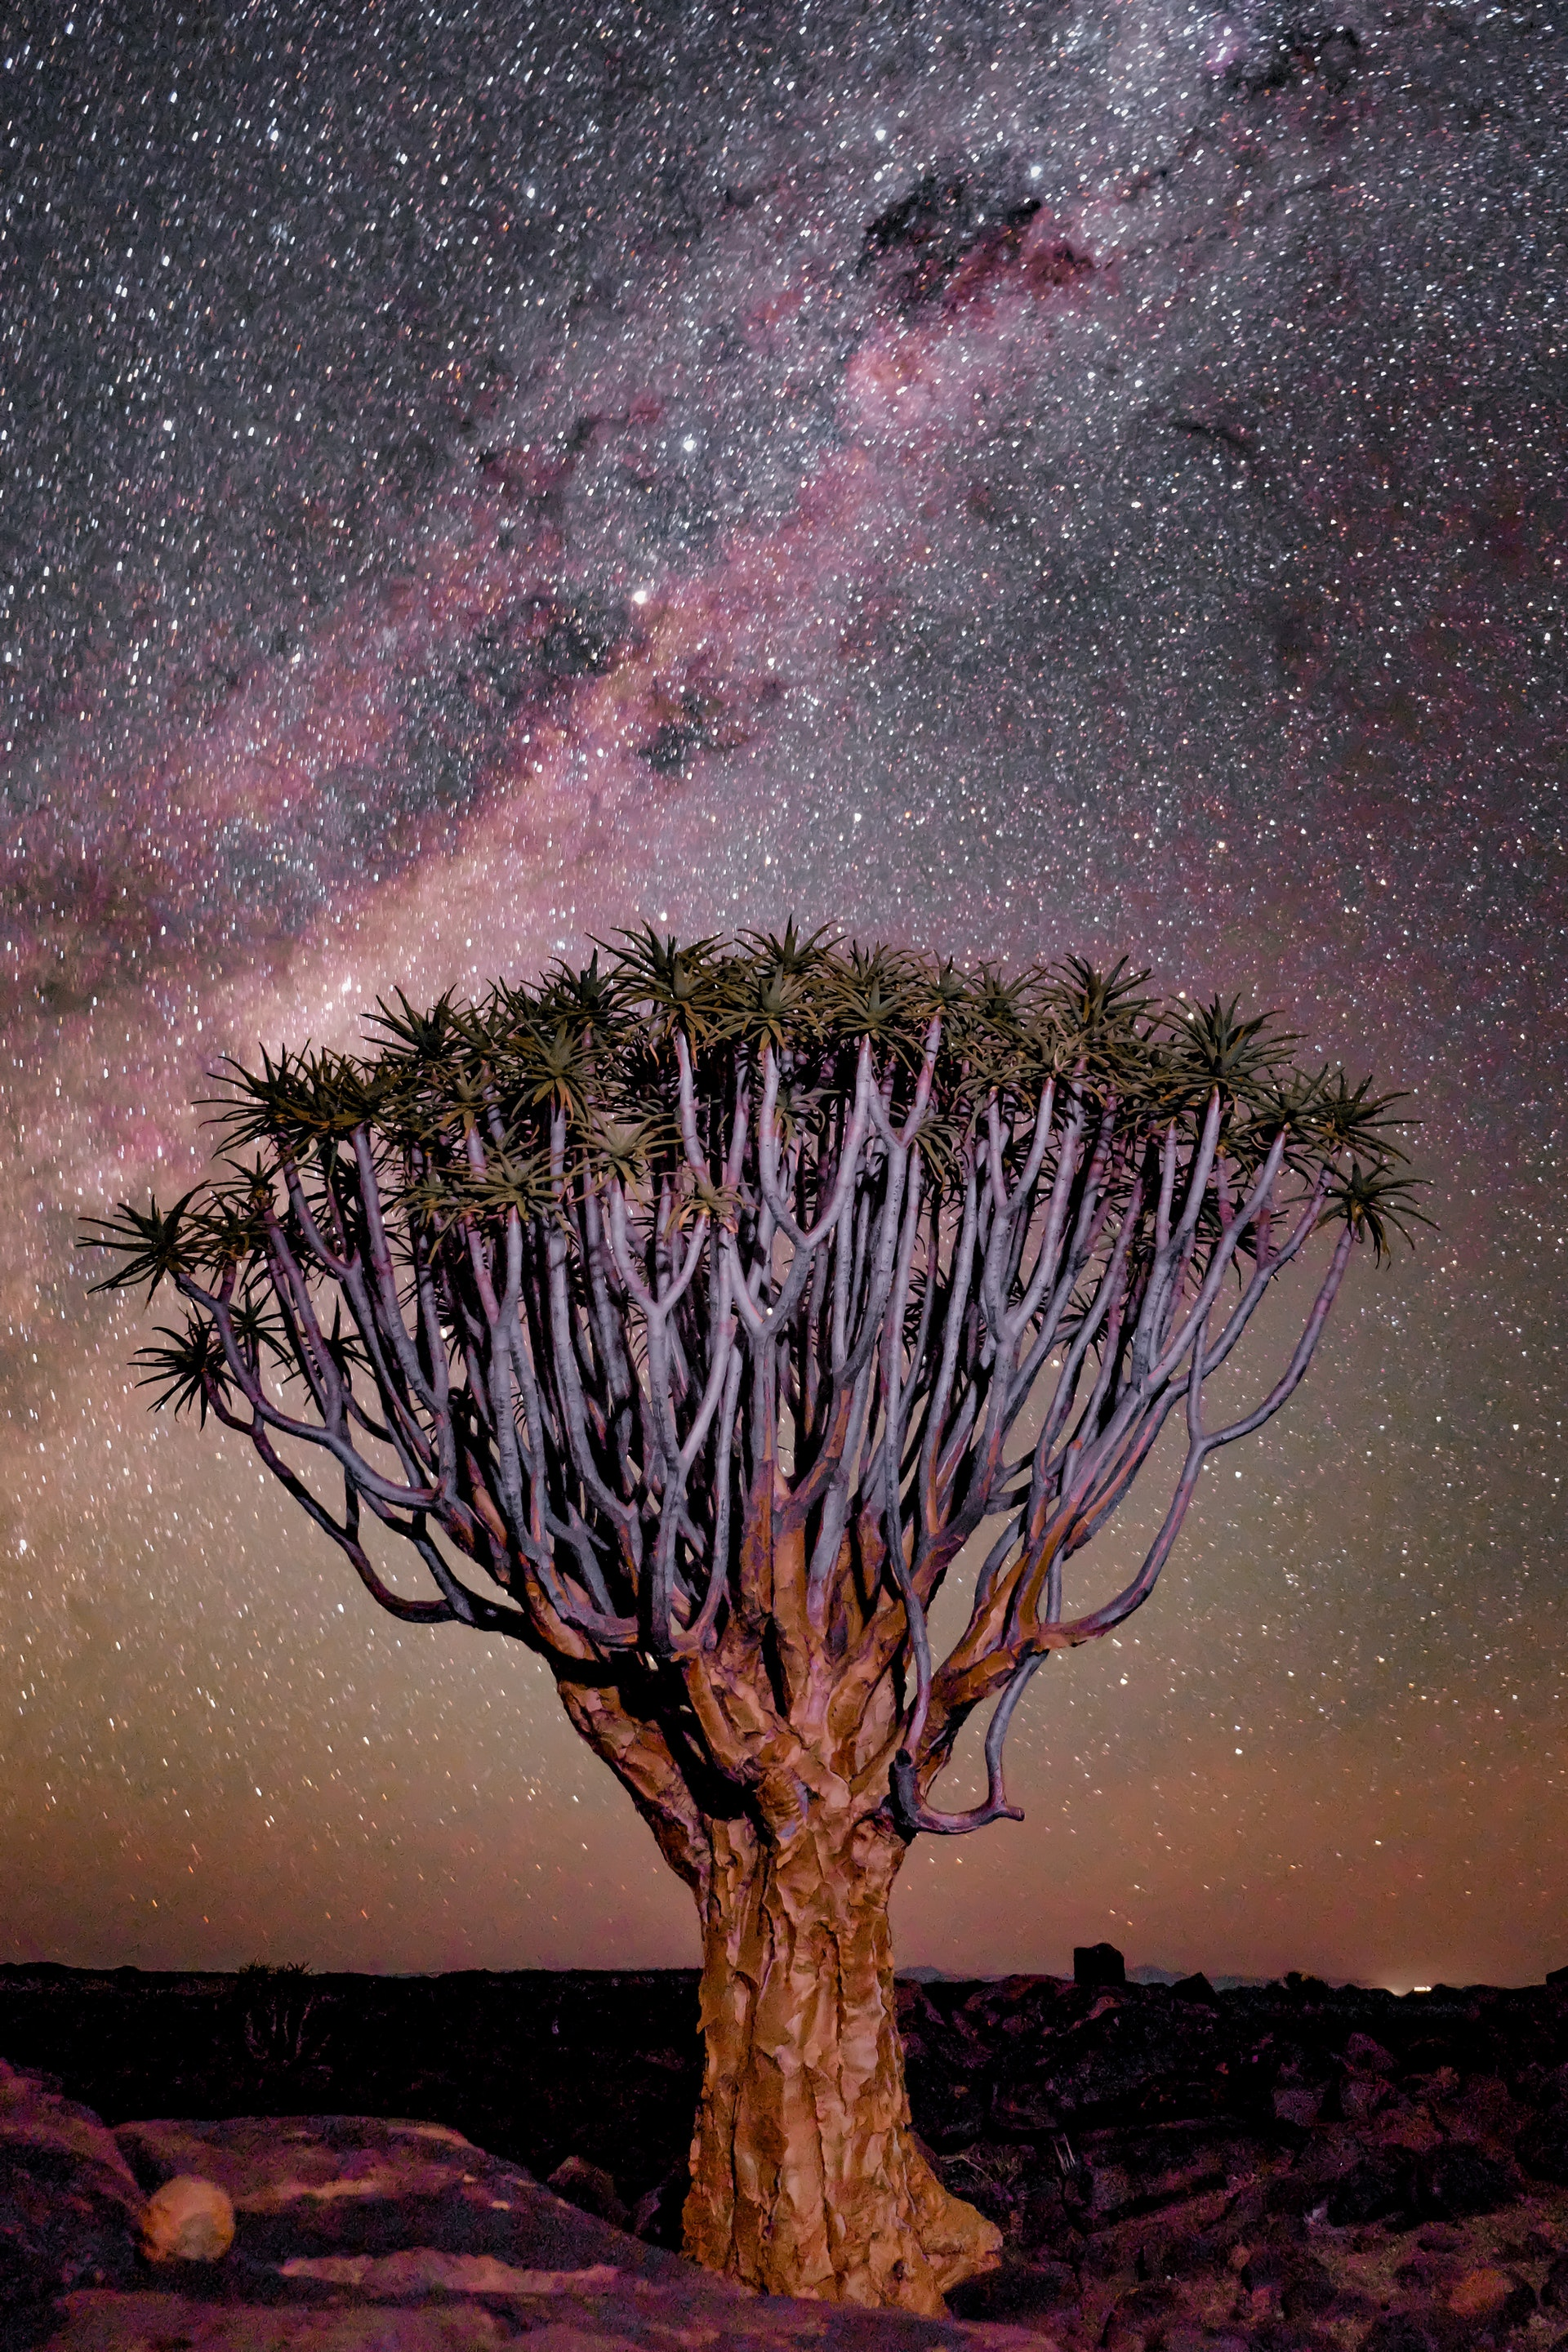 The Boabab Tree: A Look at Symbolism